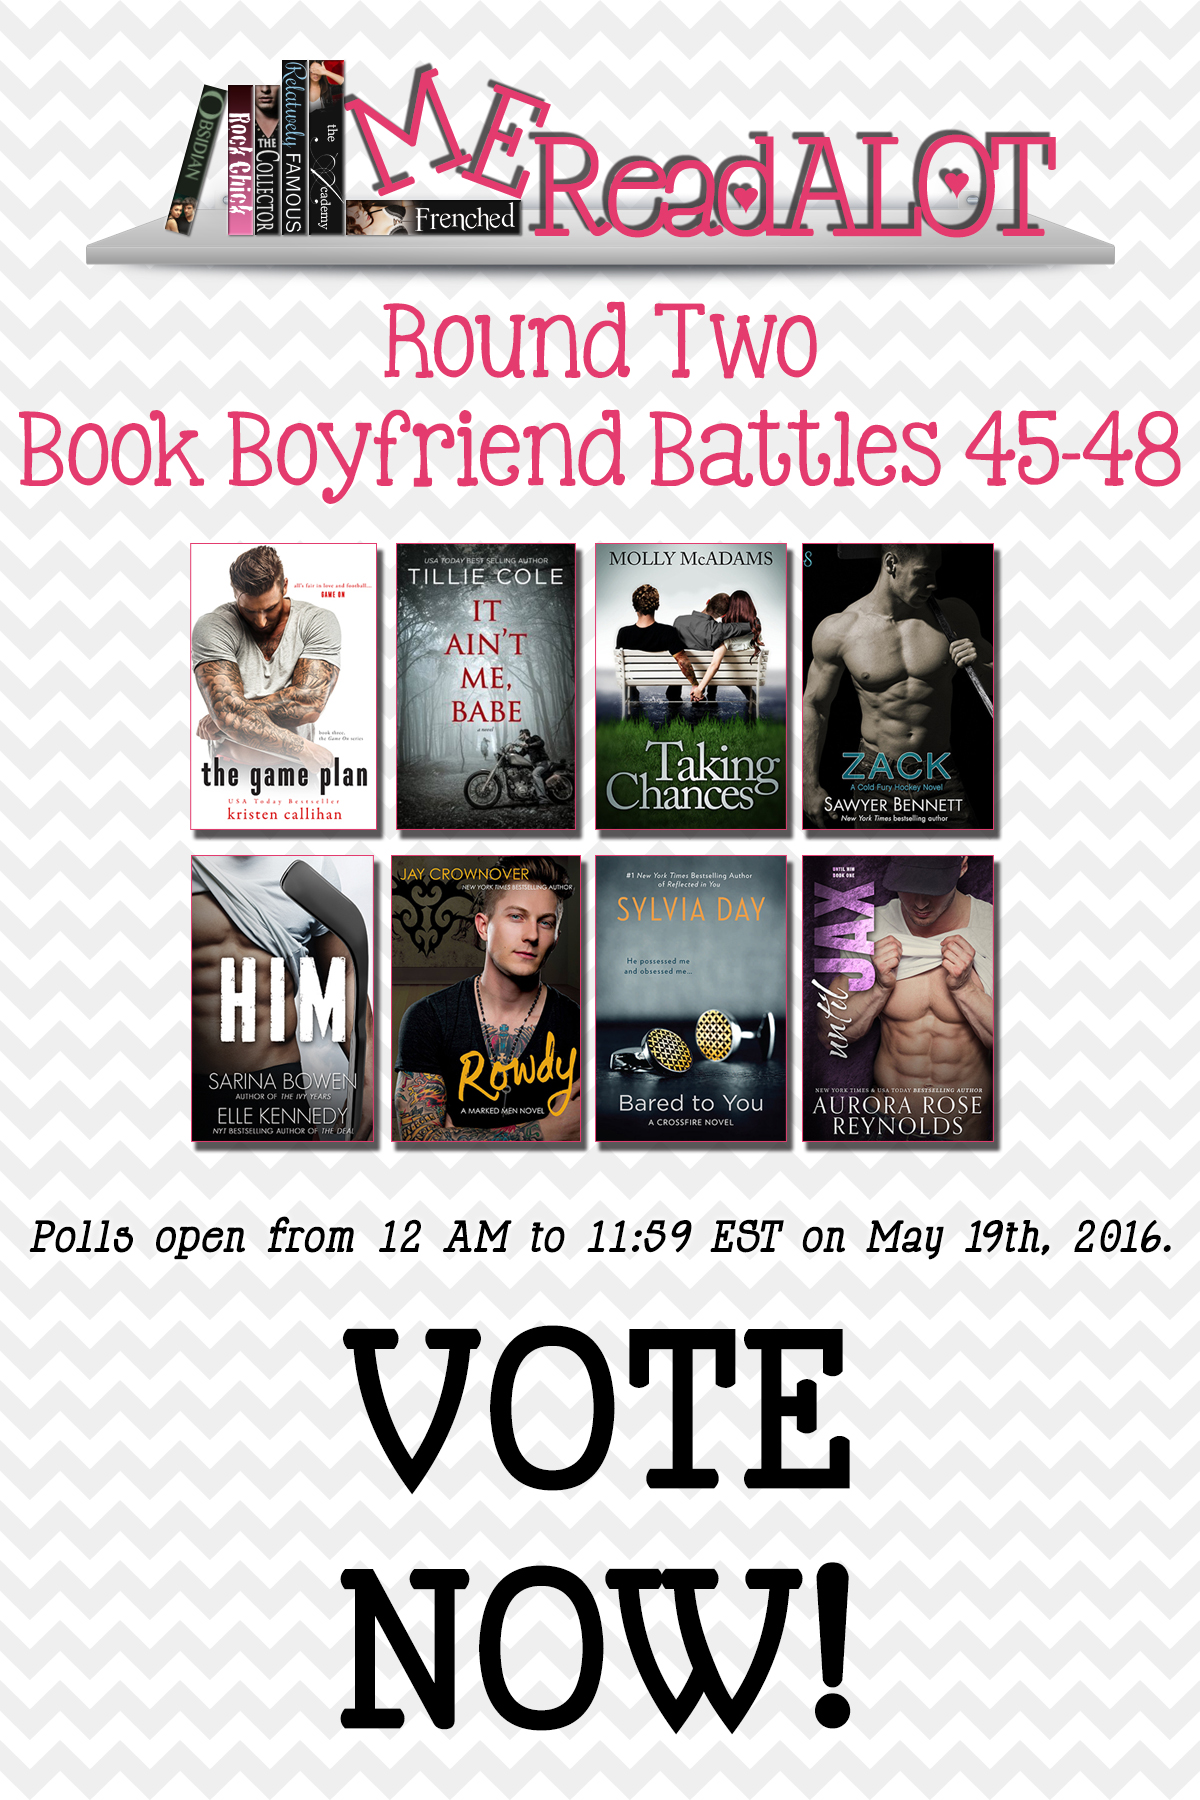 Book Boyfriend Battles 45-48